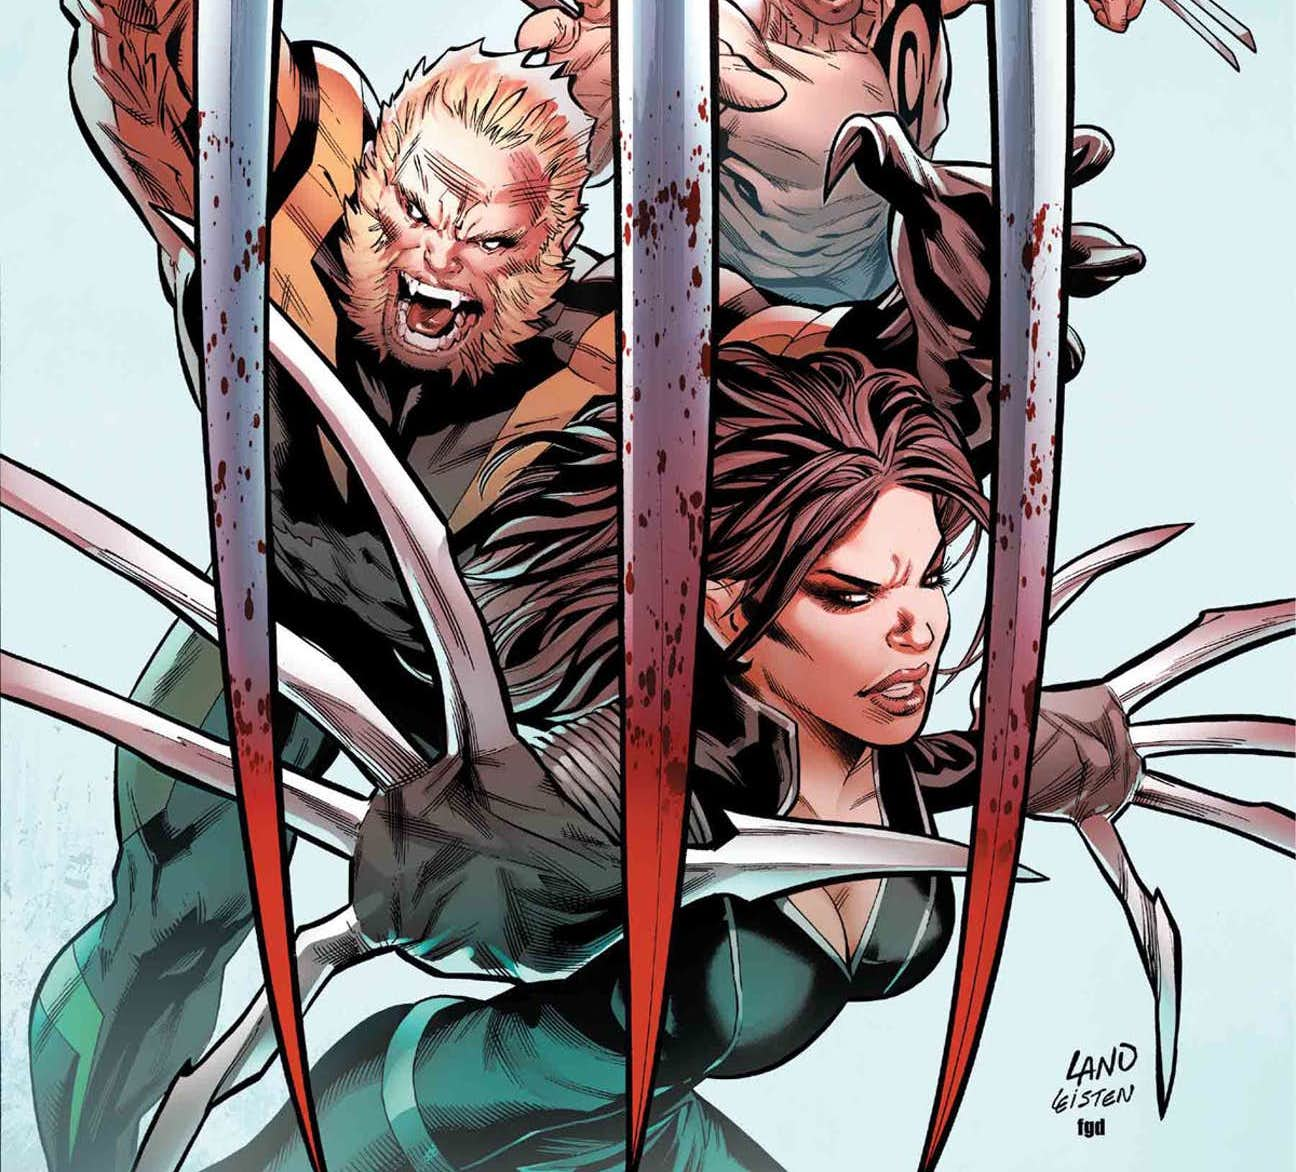 Sabretooth, Lady Deathstrike, and Daken all want Wolverine dead, but can they find him?